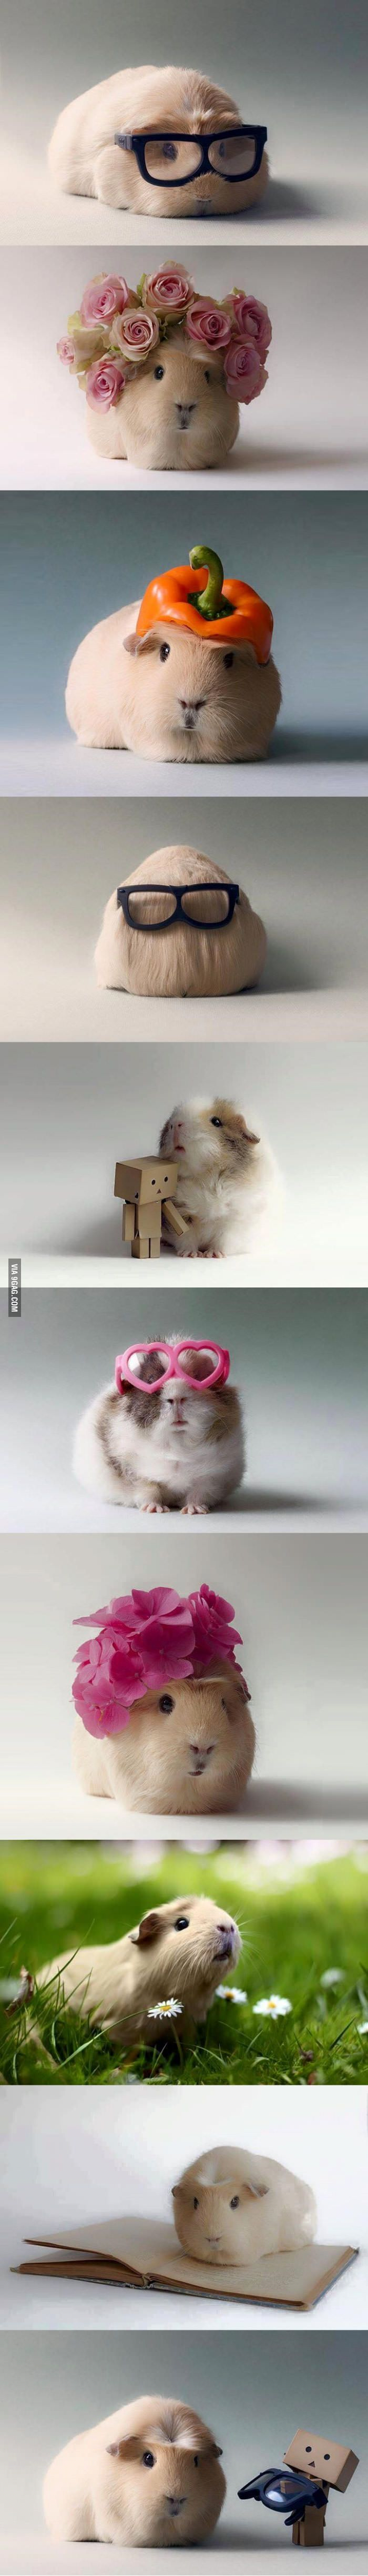 best 25 guinea pigs ideas on pinterest cute guinea pigs